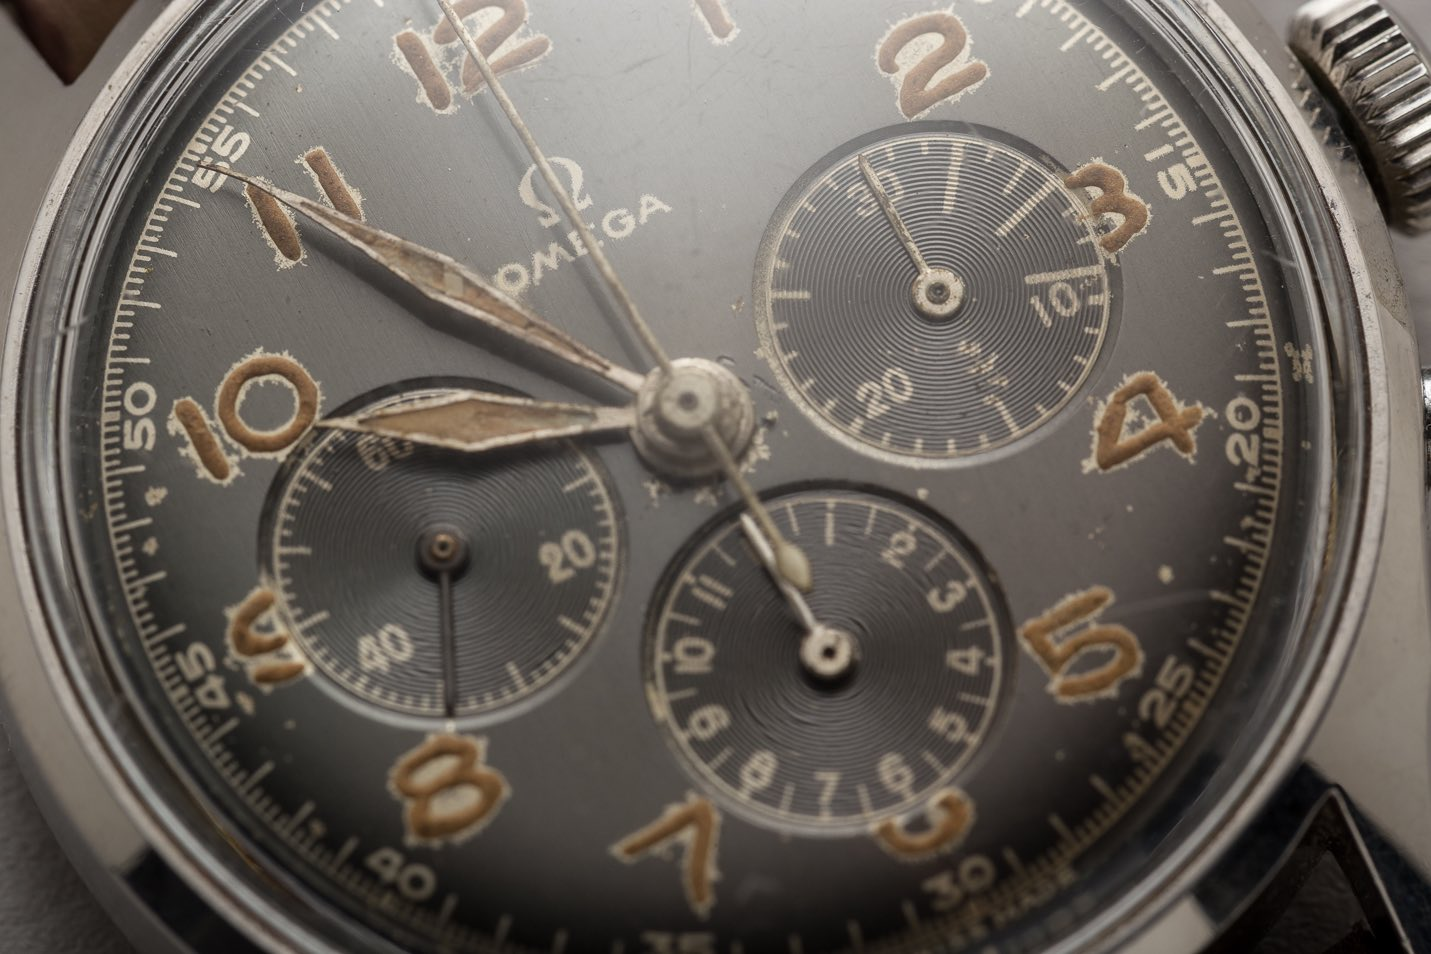 Here you can see that the radium on the numerals started to attack the dial